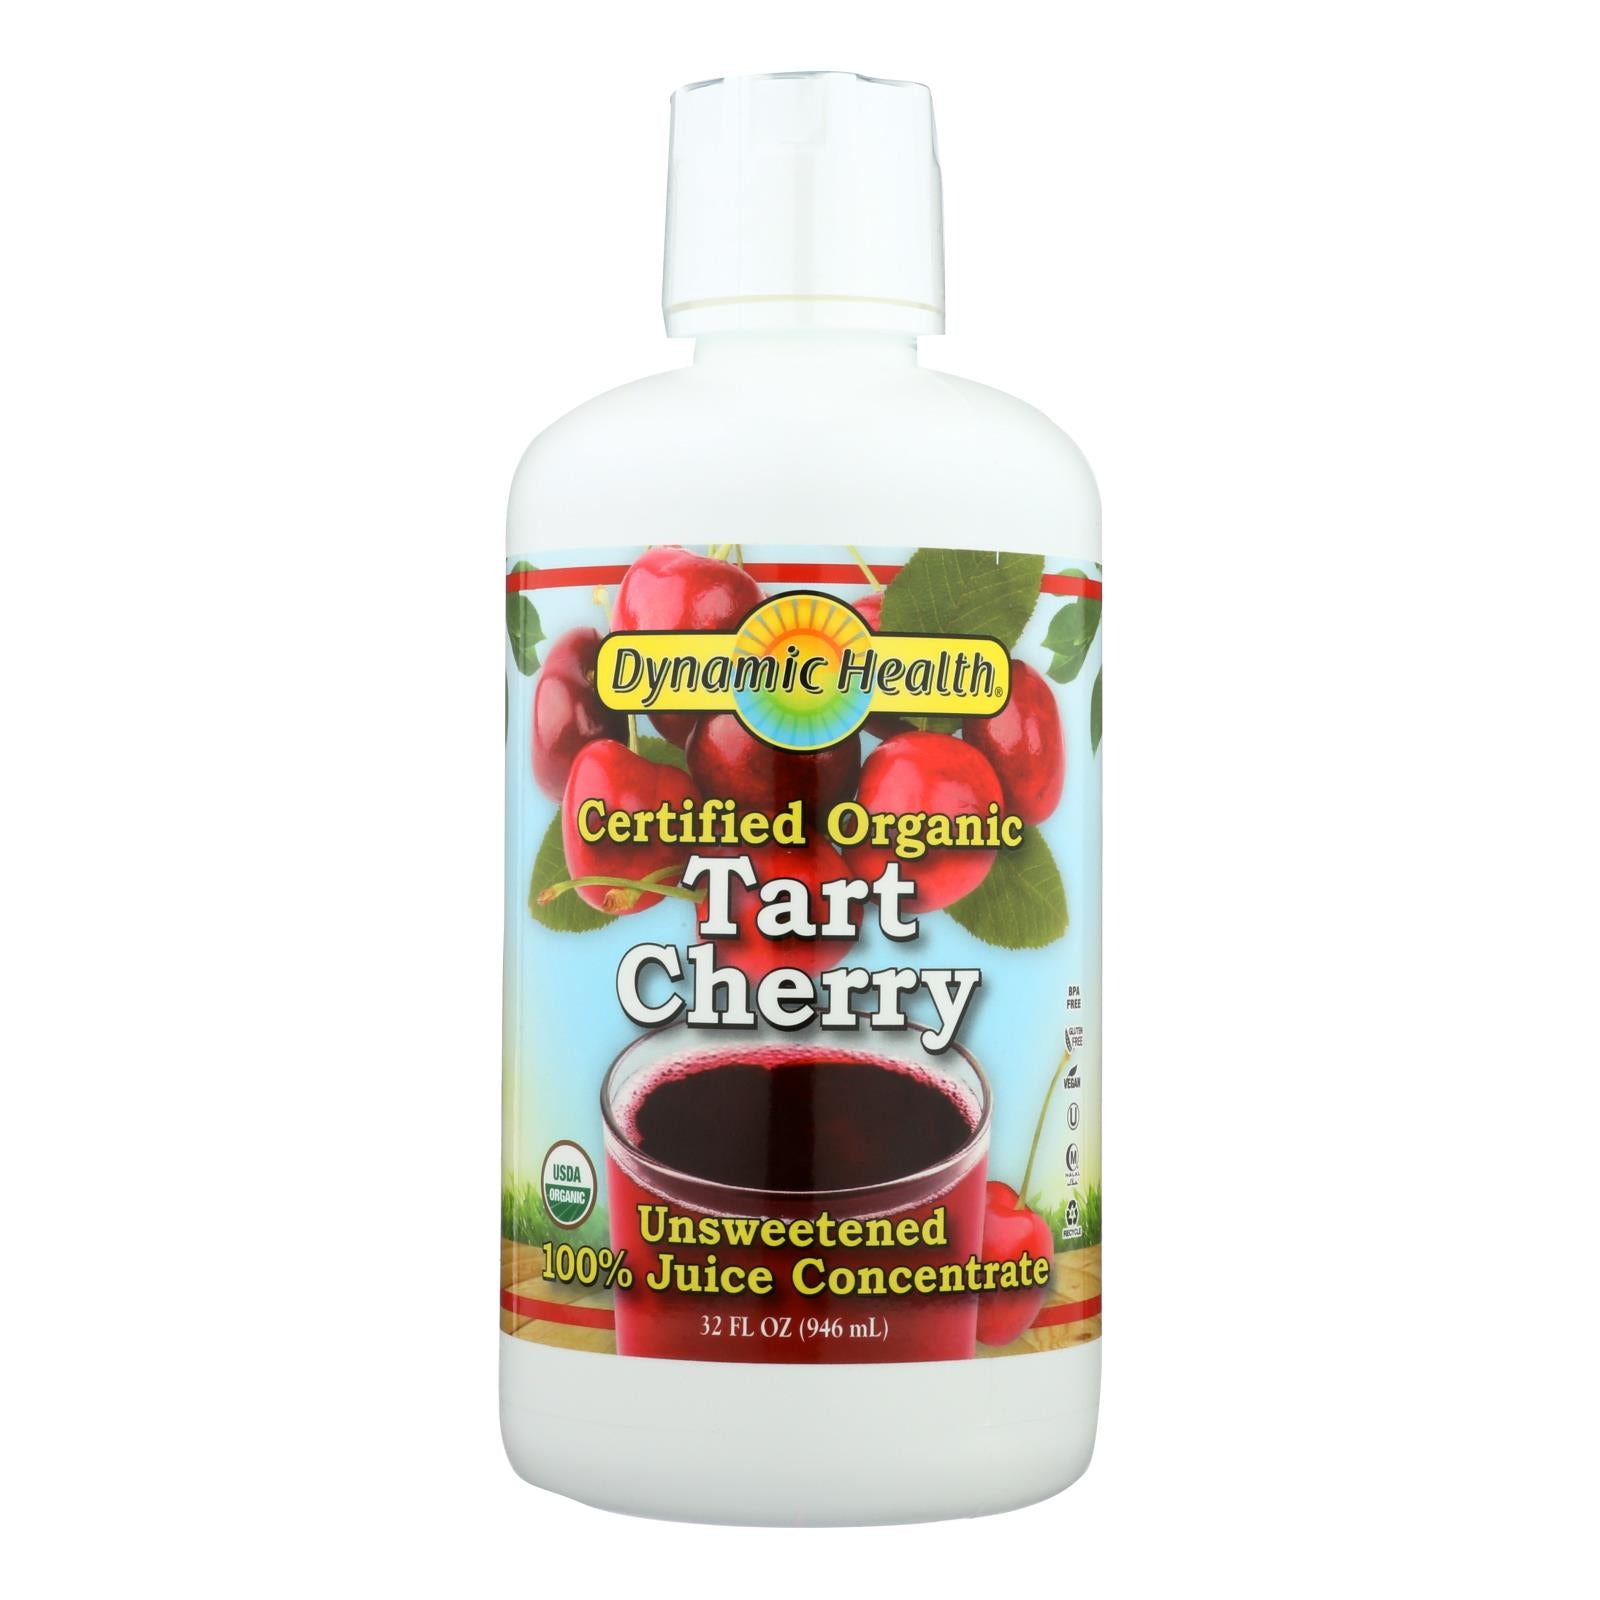 Dynamic Health Organic Tart Cherry Juice Concentrate - 32 Oz